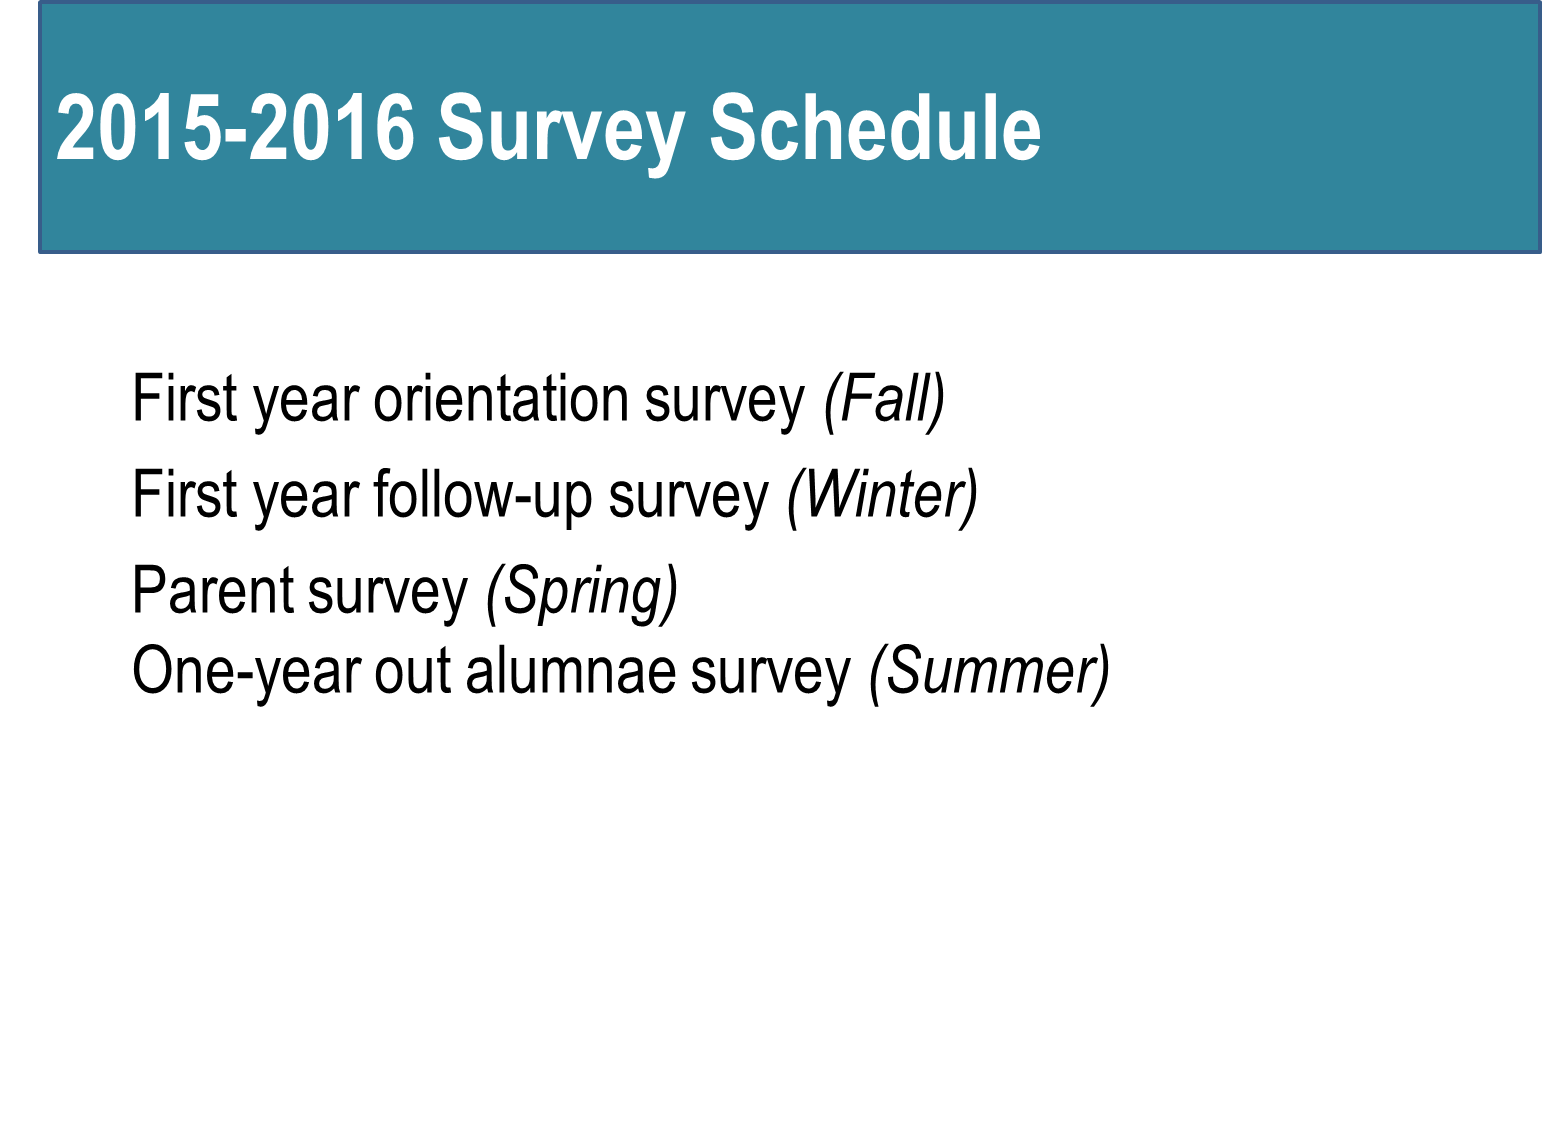 OIR's planned survey schedule for 2015-16